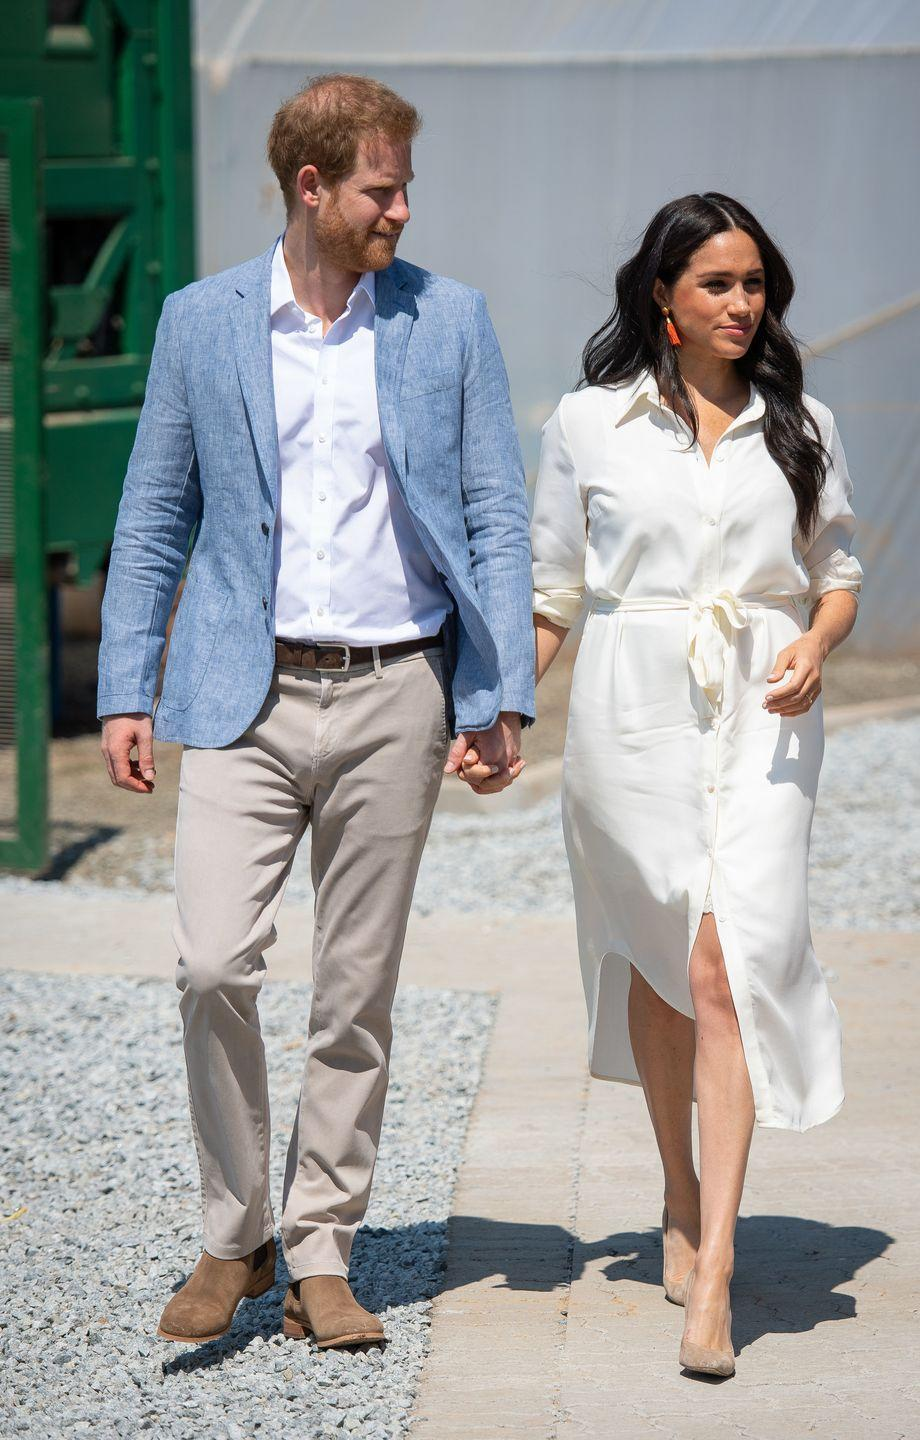 """<p>The Duke and Duchess of Sussex continued their royal tour with a visit to Tembisa township outside Johannesburg. <a href=""""https://www.townandcountrymag.com/style/fashion-trends/a29300614/meghan-markle-white-dress-pink-earrings-johannesburg/"""" rel=""""nofollow noopener"""" target=""""_blank"""" data-ylk=""""slk:Meghan wore a white shirt dress"""" class=""""link rapid-noclick-resp"""">Meghan wore a white shirt dress</a> for the event, paired with bright pink earrings and nude heels. </p>"""